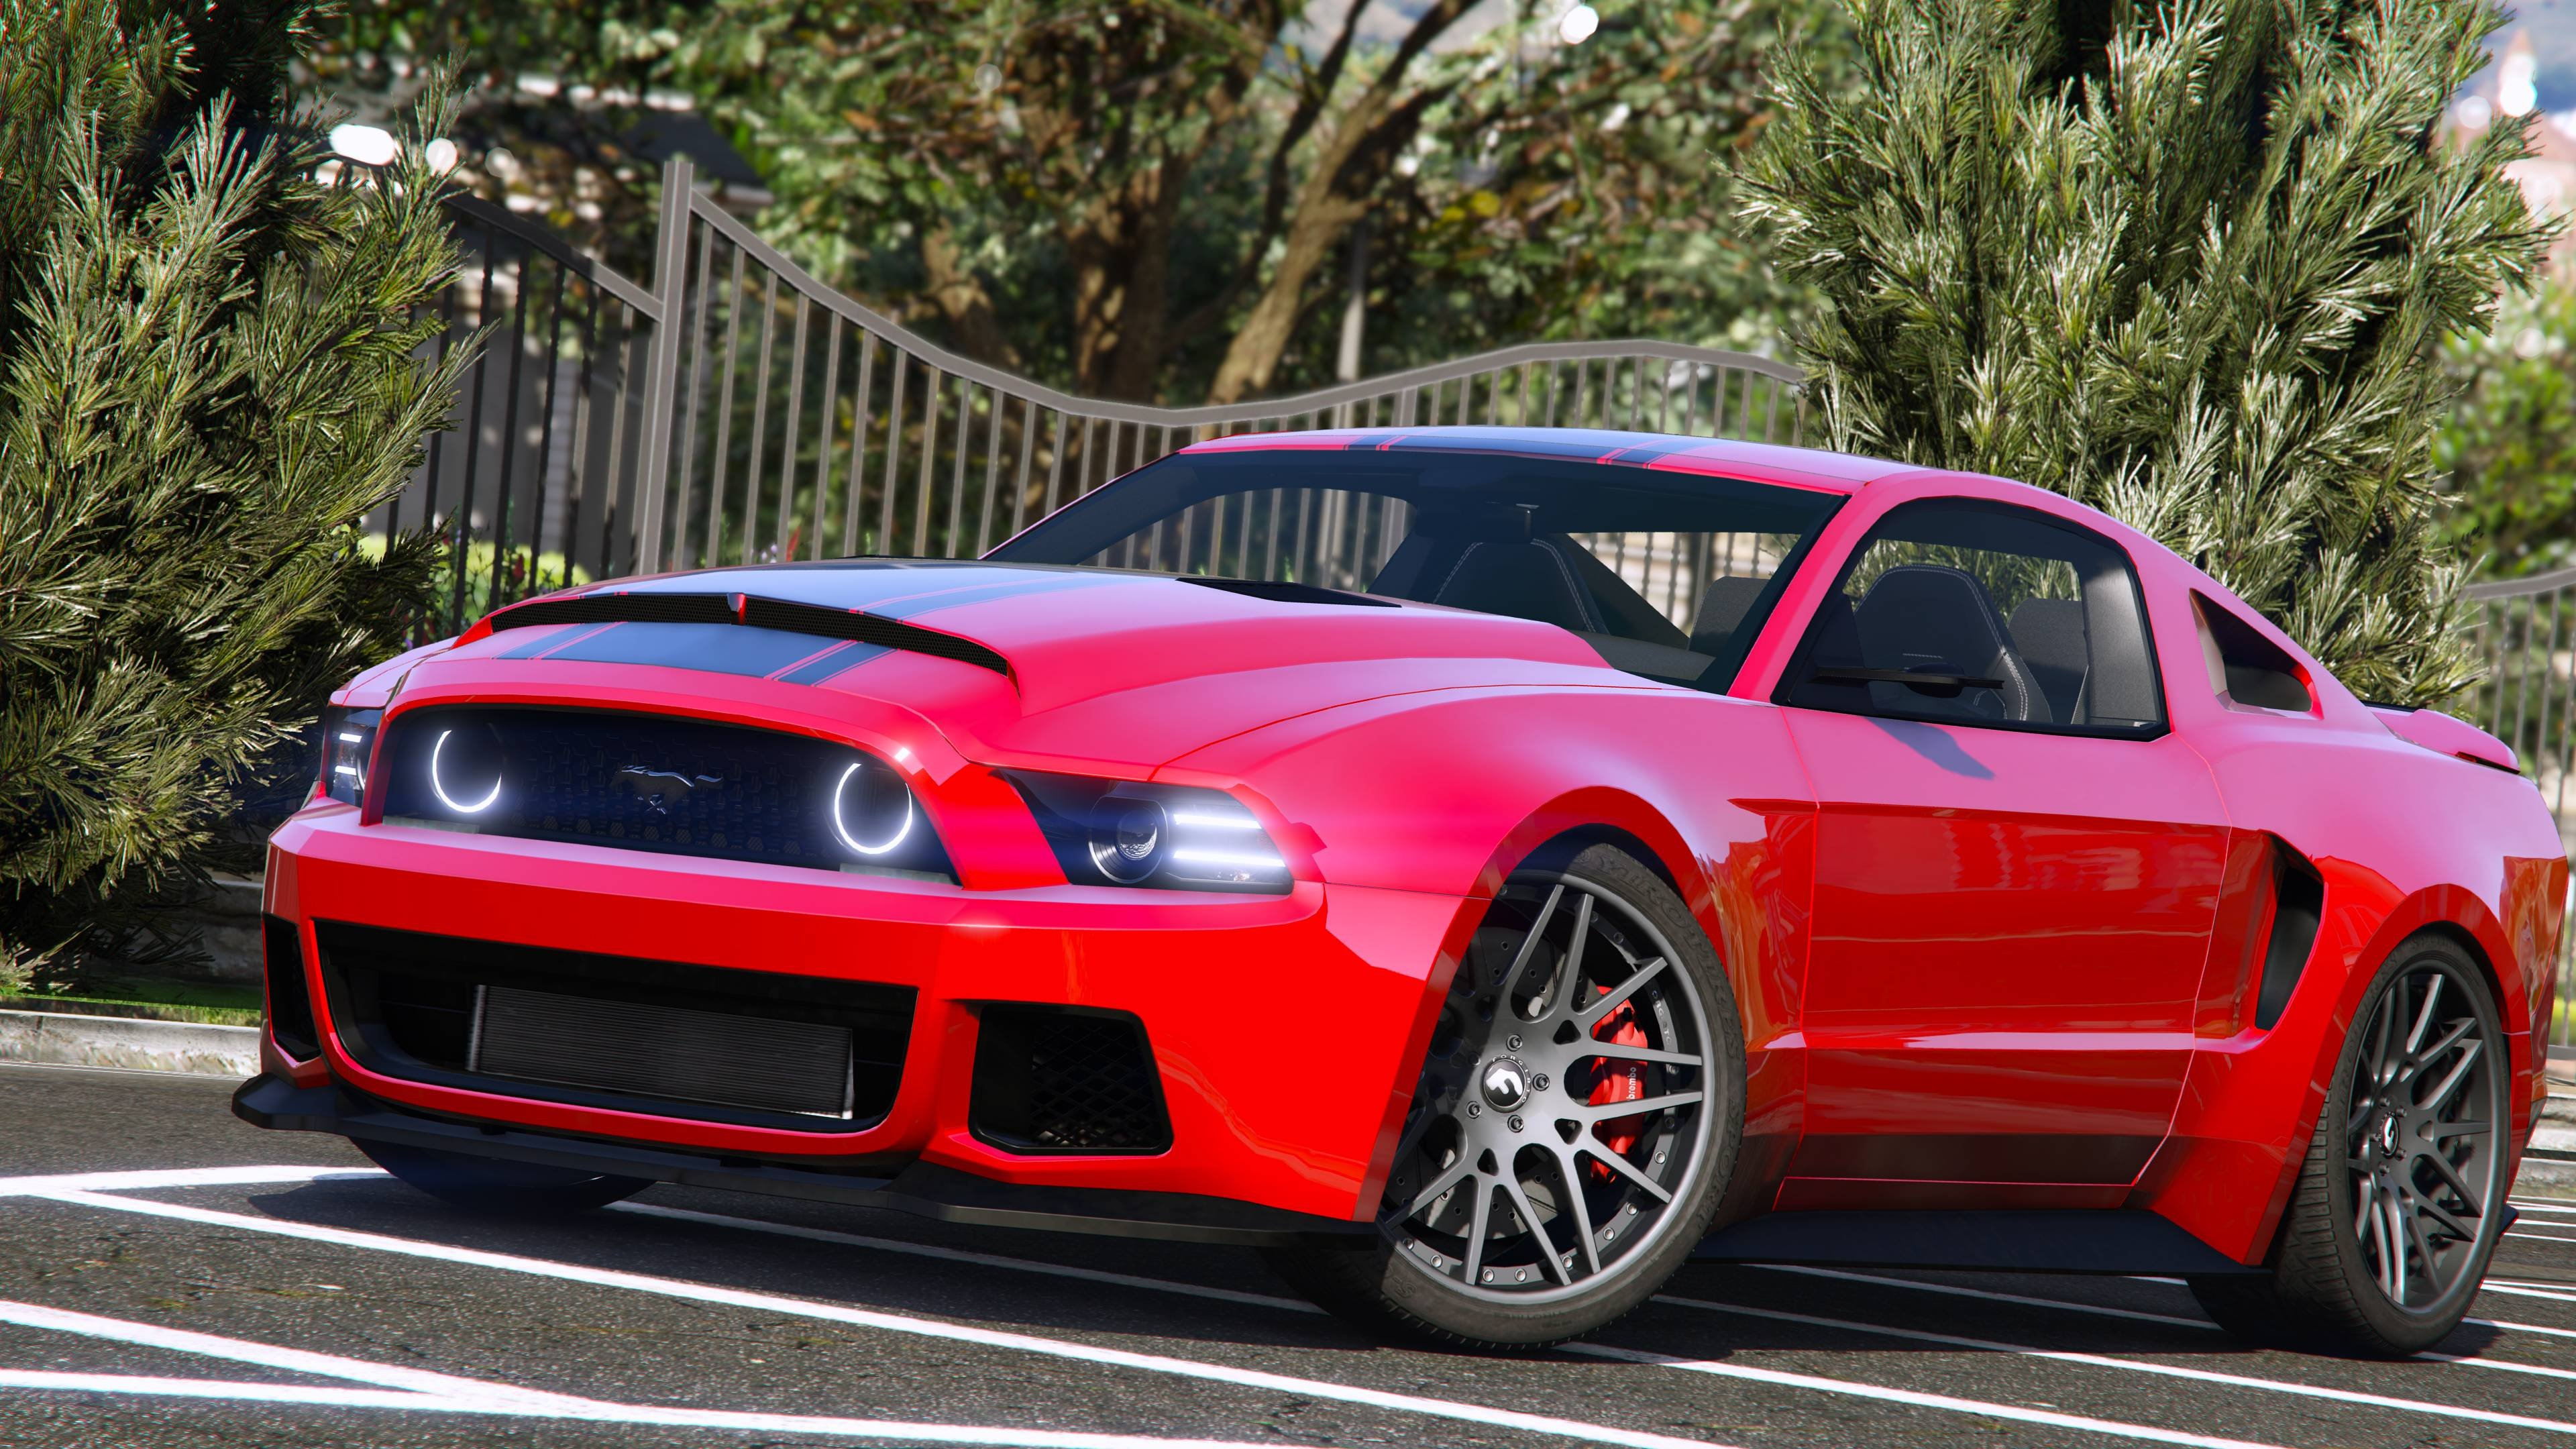 Ford mustang gt nfs gt500 2013 add on gta5 - Mustang gt ...